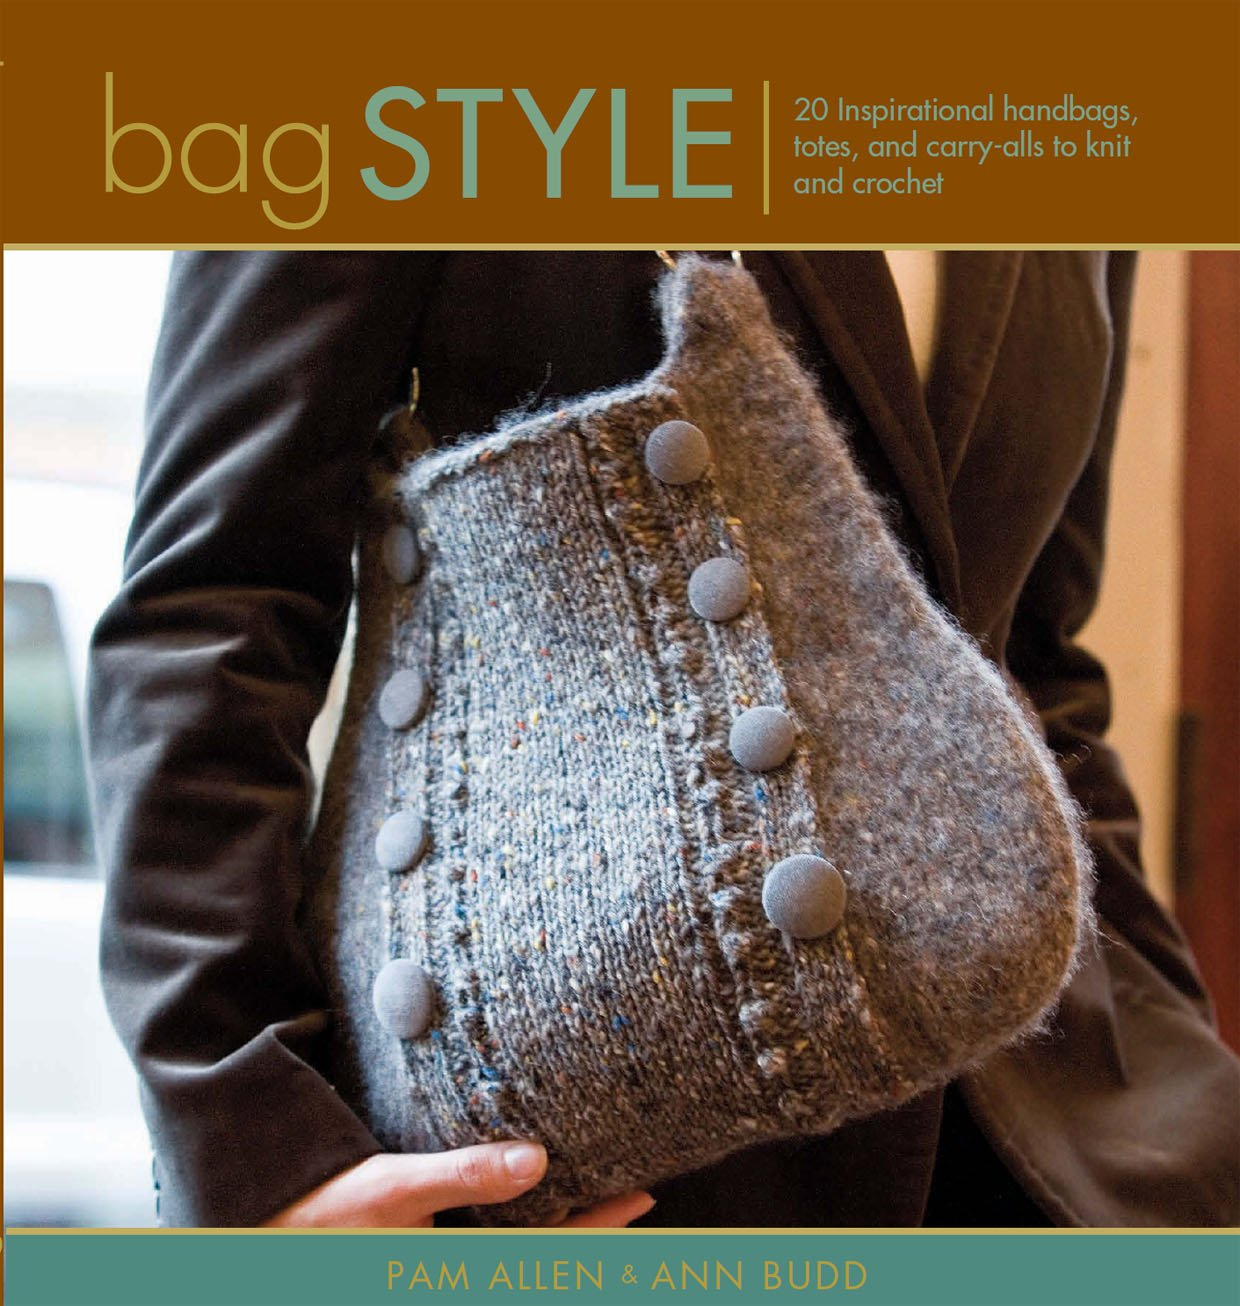 Bag Style: Innovative to Traditional, 20 Inspirational Handbags, Totes, and Carry-Alls to Knit and Crochet (Style)